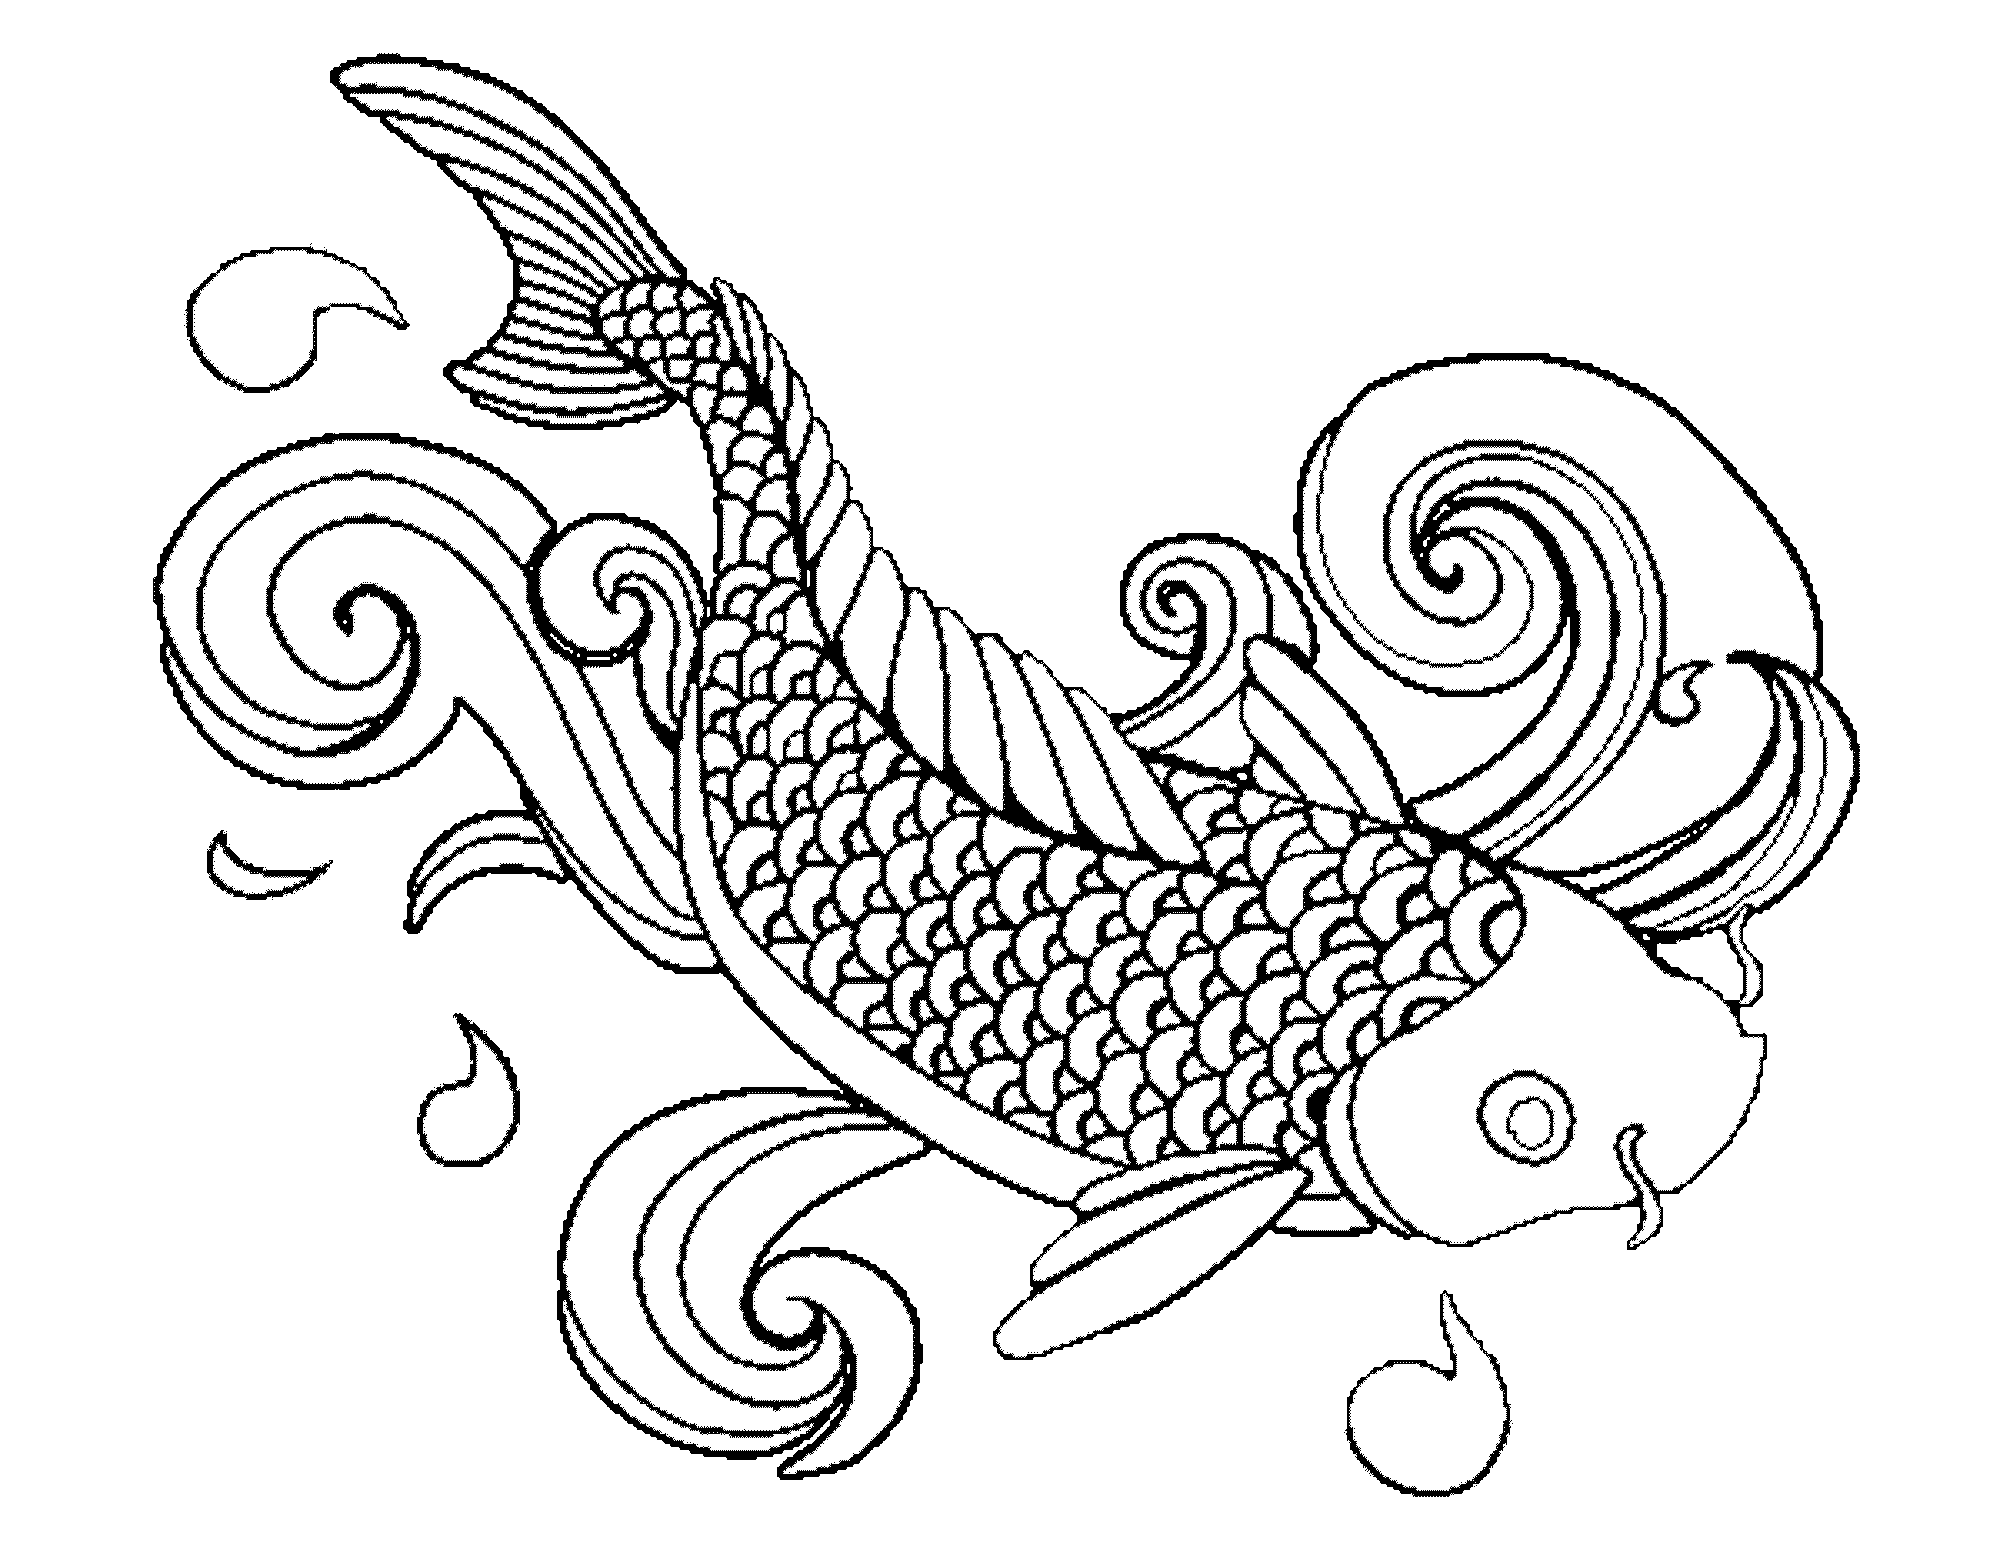 2000x1567 Fish Coloring Page Koi Printable General Free Color Book To Print